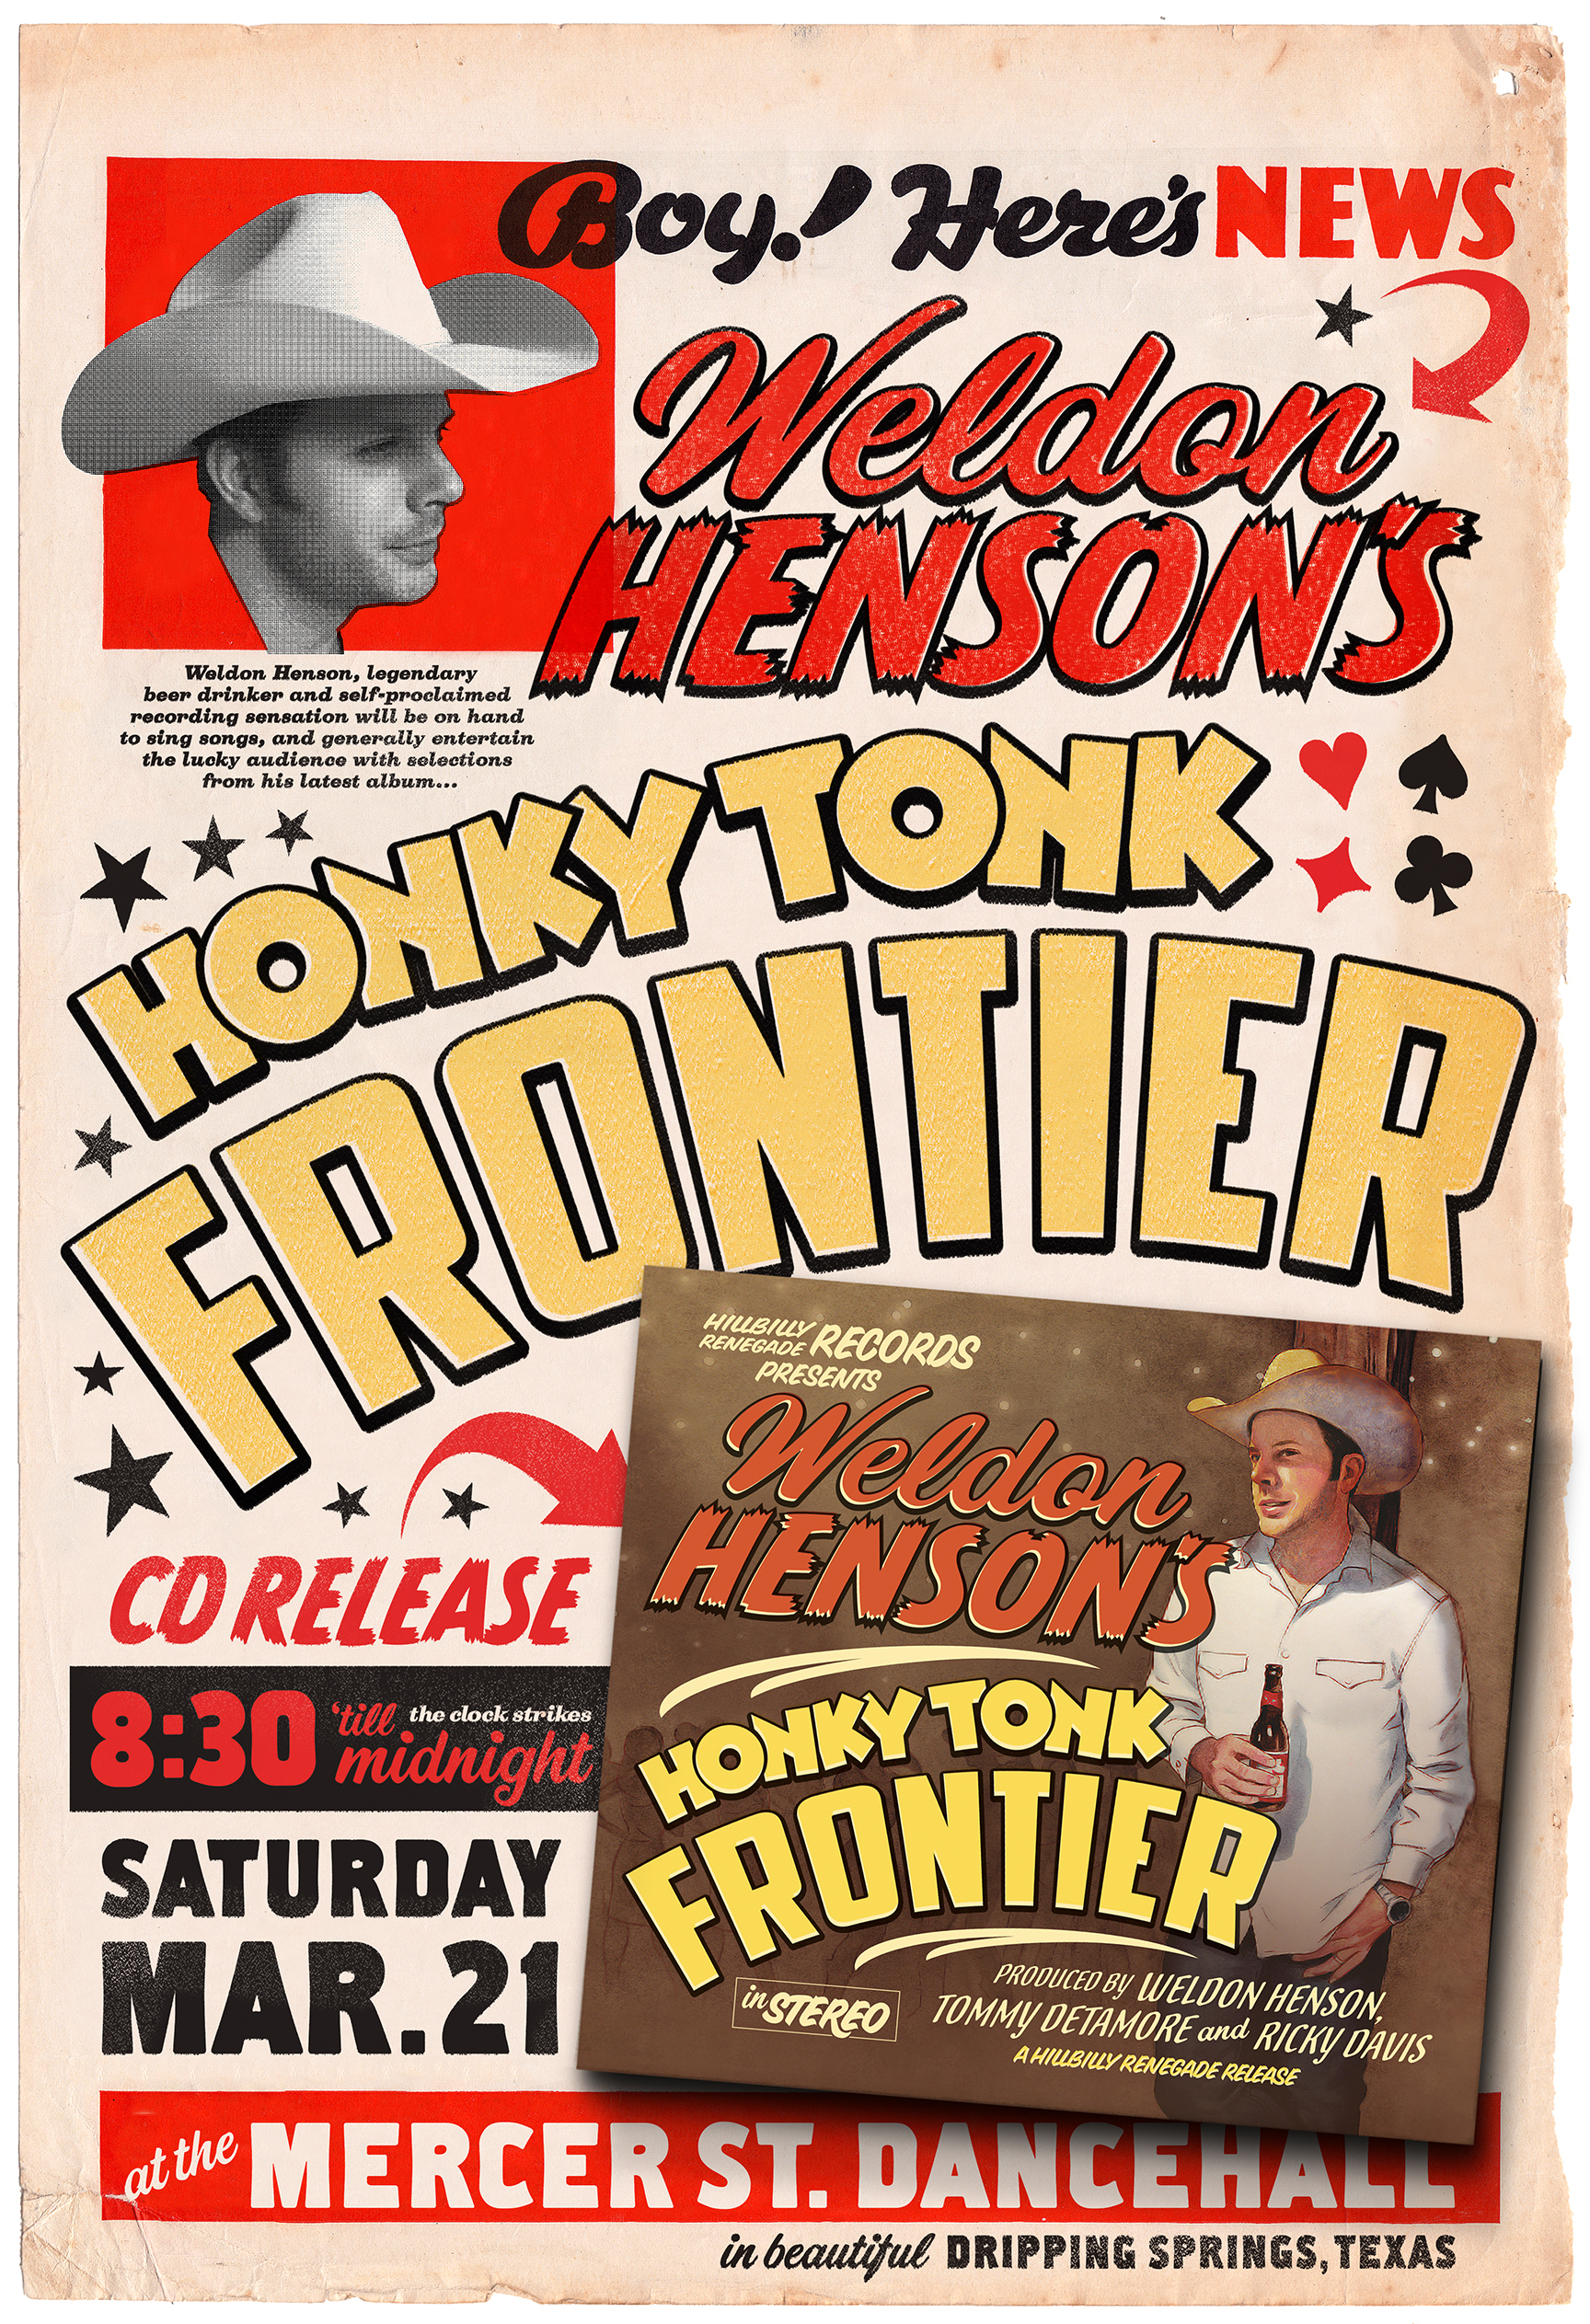 Poster for Weldon's Honky Tonk Frontier album launch party, Mercer's Dancehall, Dripping Springs, 2015